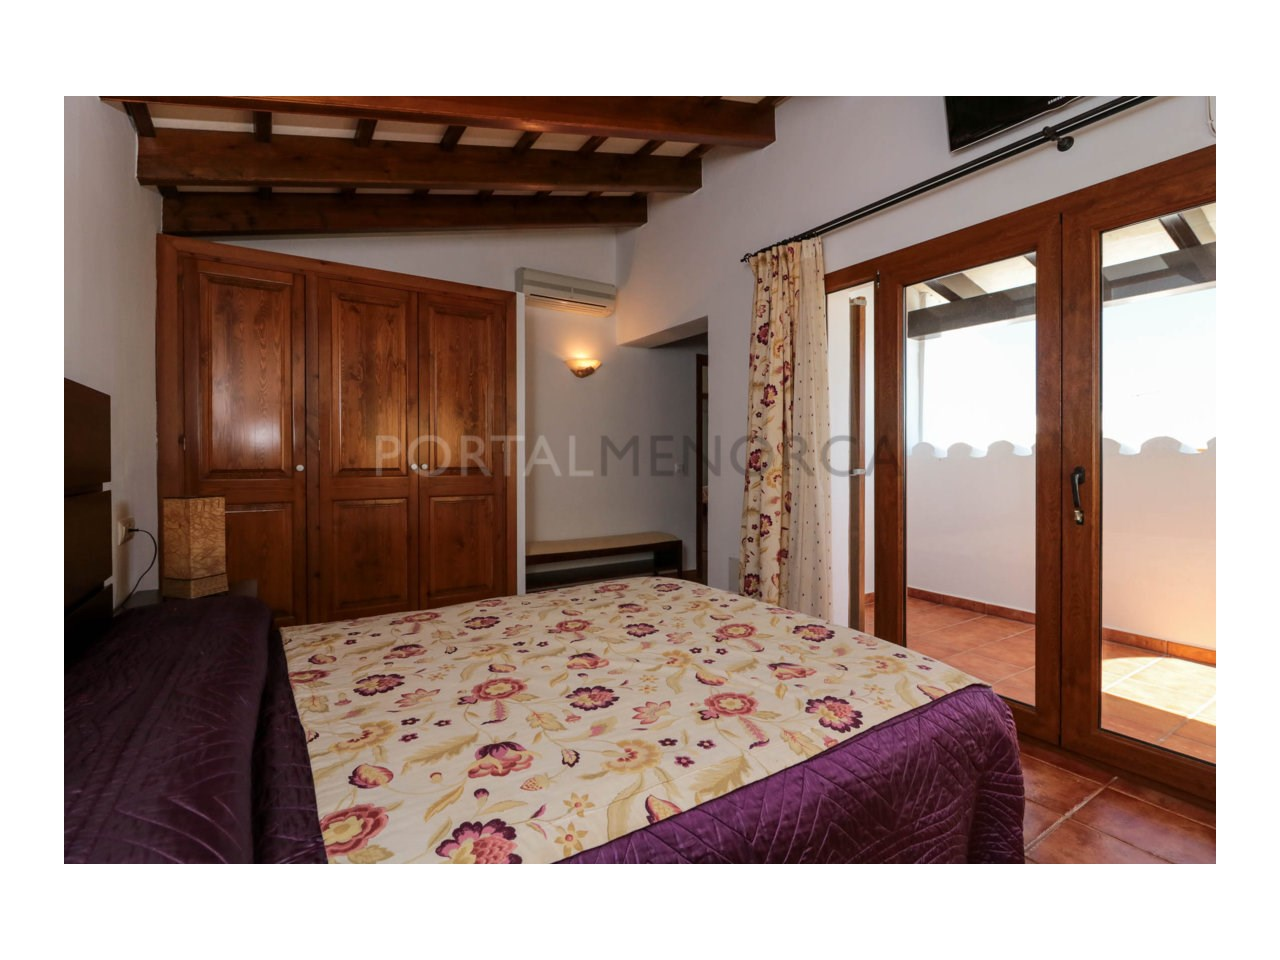 Villa for sale in Cala Morell with sea views and tourist license-Bedroom